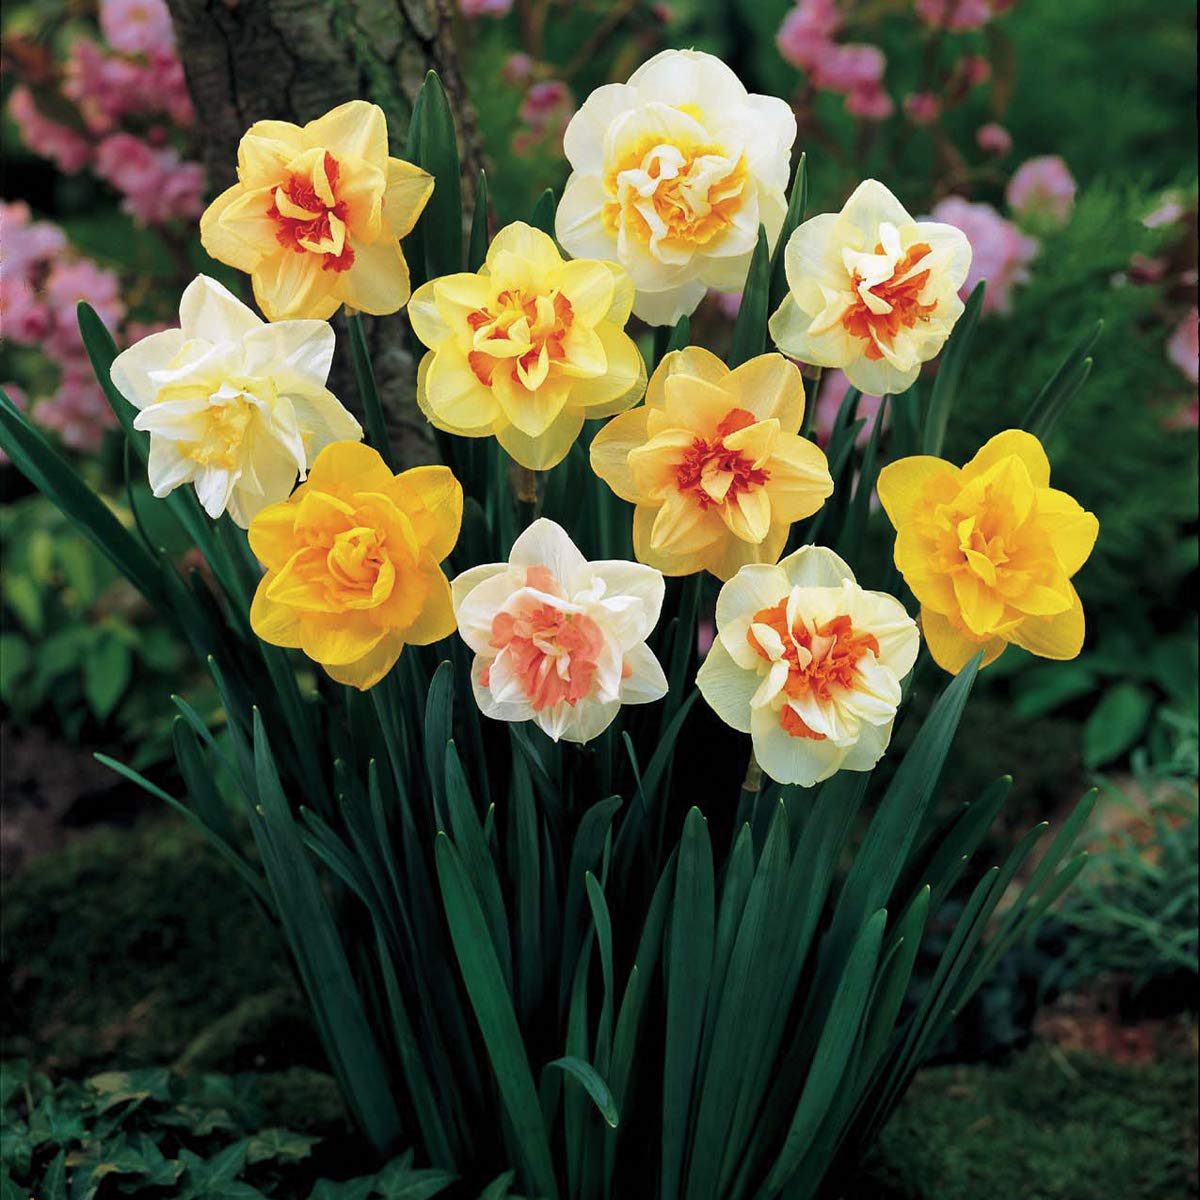 Burpee Double Mix Daffodil | 12 Large Flowering Fall Bulbs for Planting, Multiple Colors by Burpee